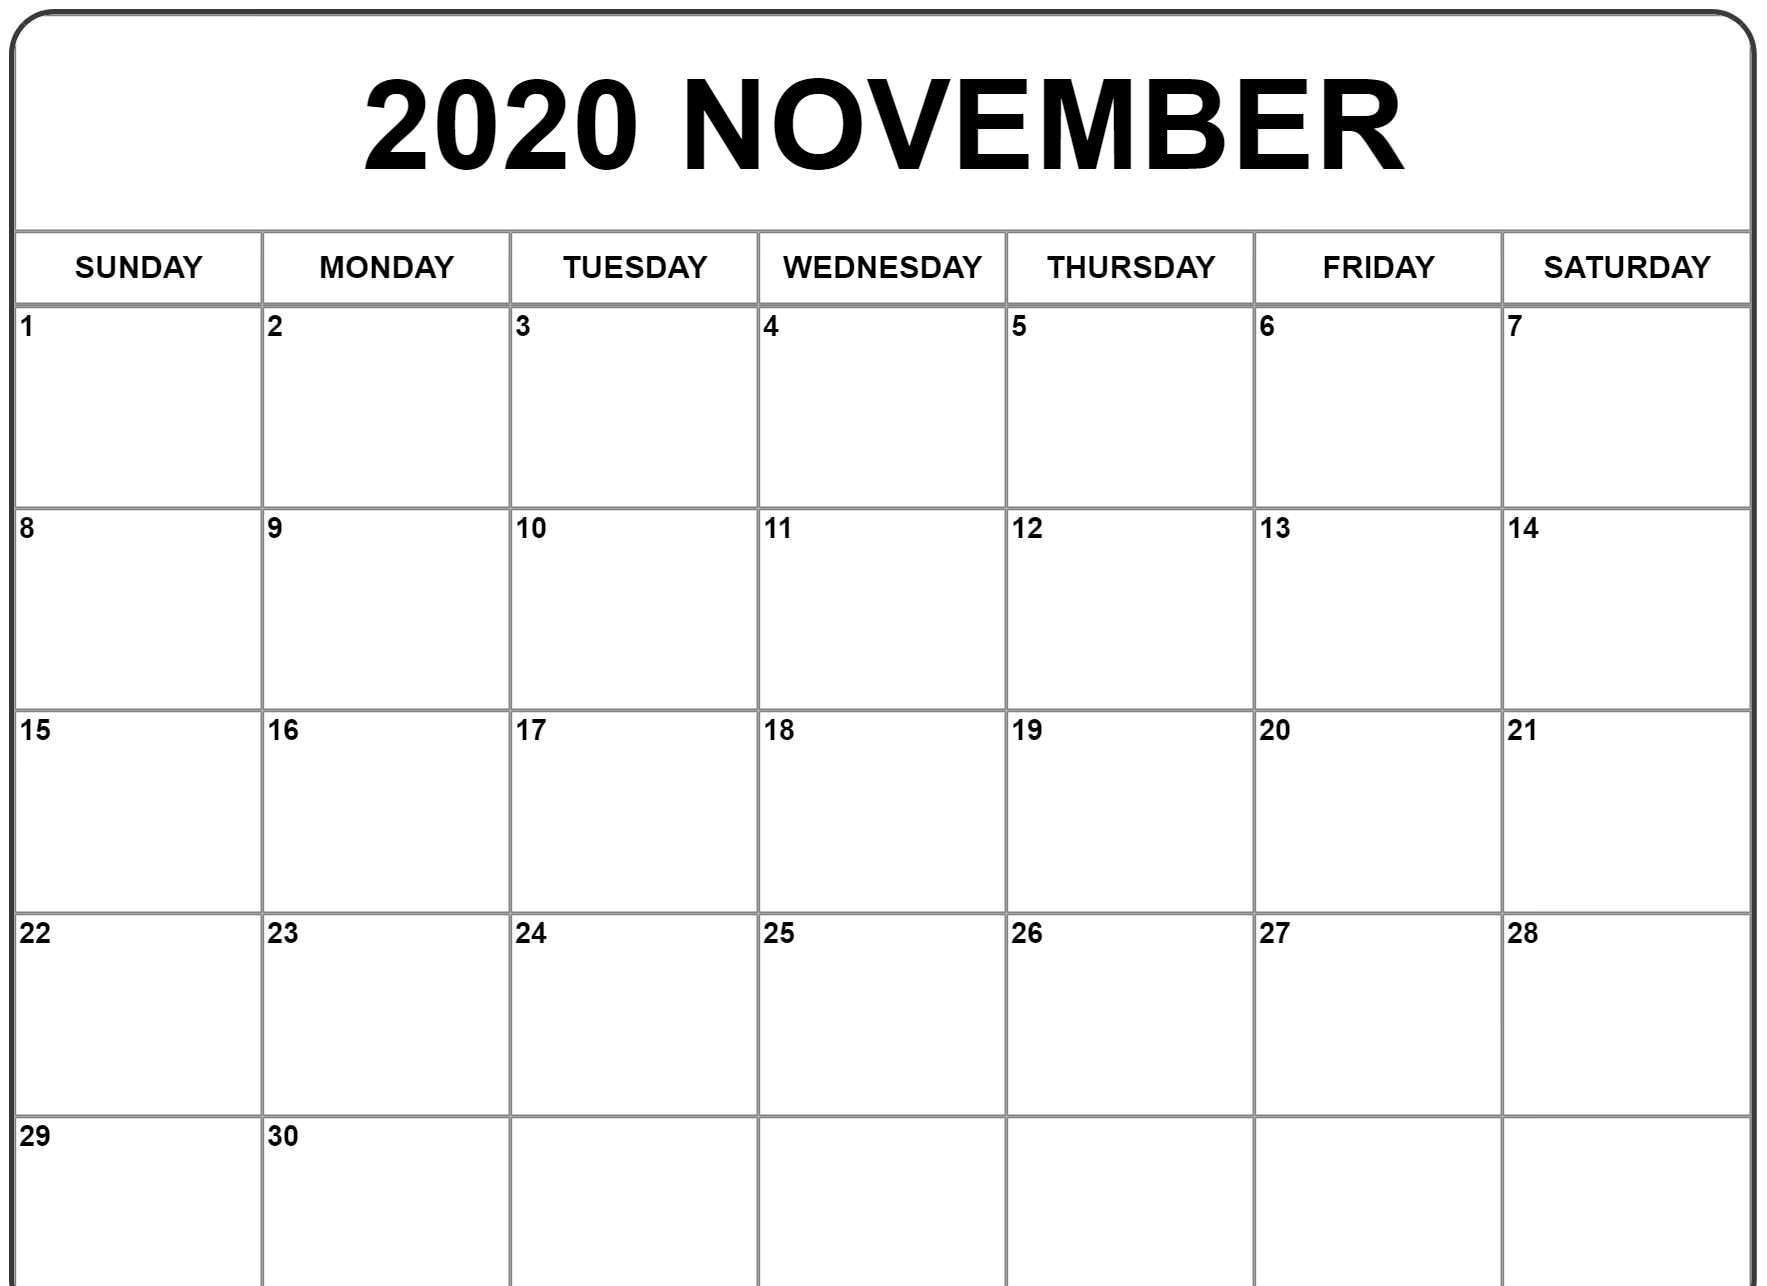 Exceptional 2020 Calendar For November Calendar Template Editable Calendar Calendar Printables